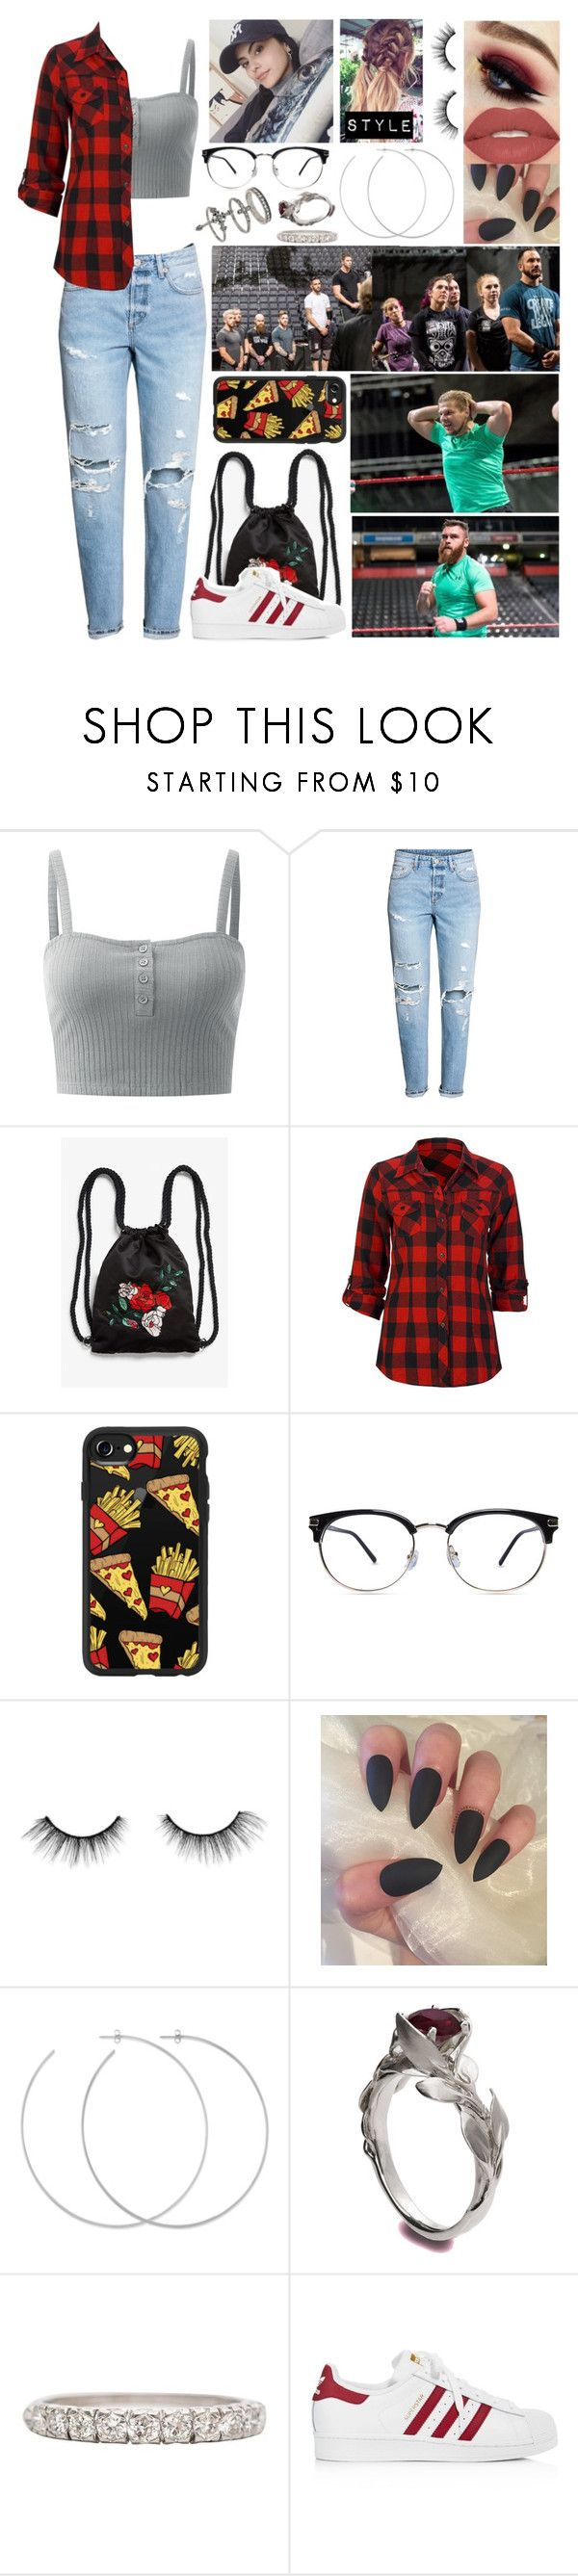 """quote, unquote, coach sousa 🌺 j.t. 🌺"" by lostboyys ❤ liked on Polyvore featuring Monki, Full Tilt, Casetify, tarte, Allison Bryan, Smashbox, adidas and Miss Selfridge"